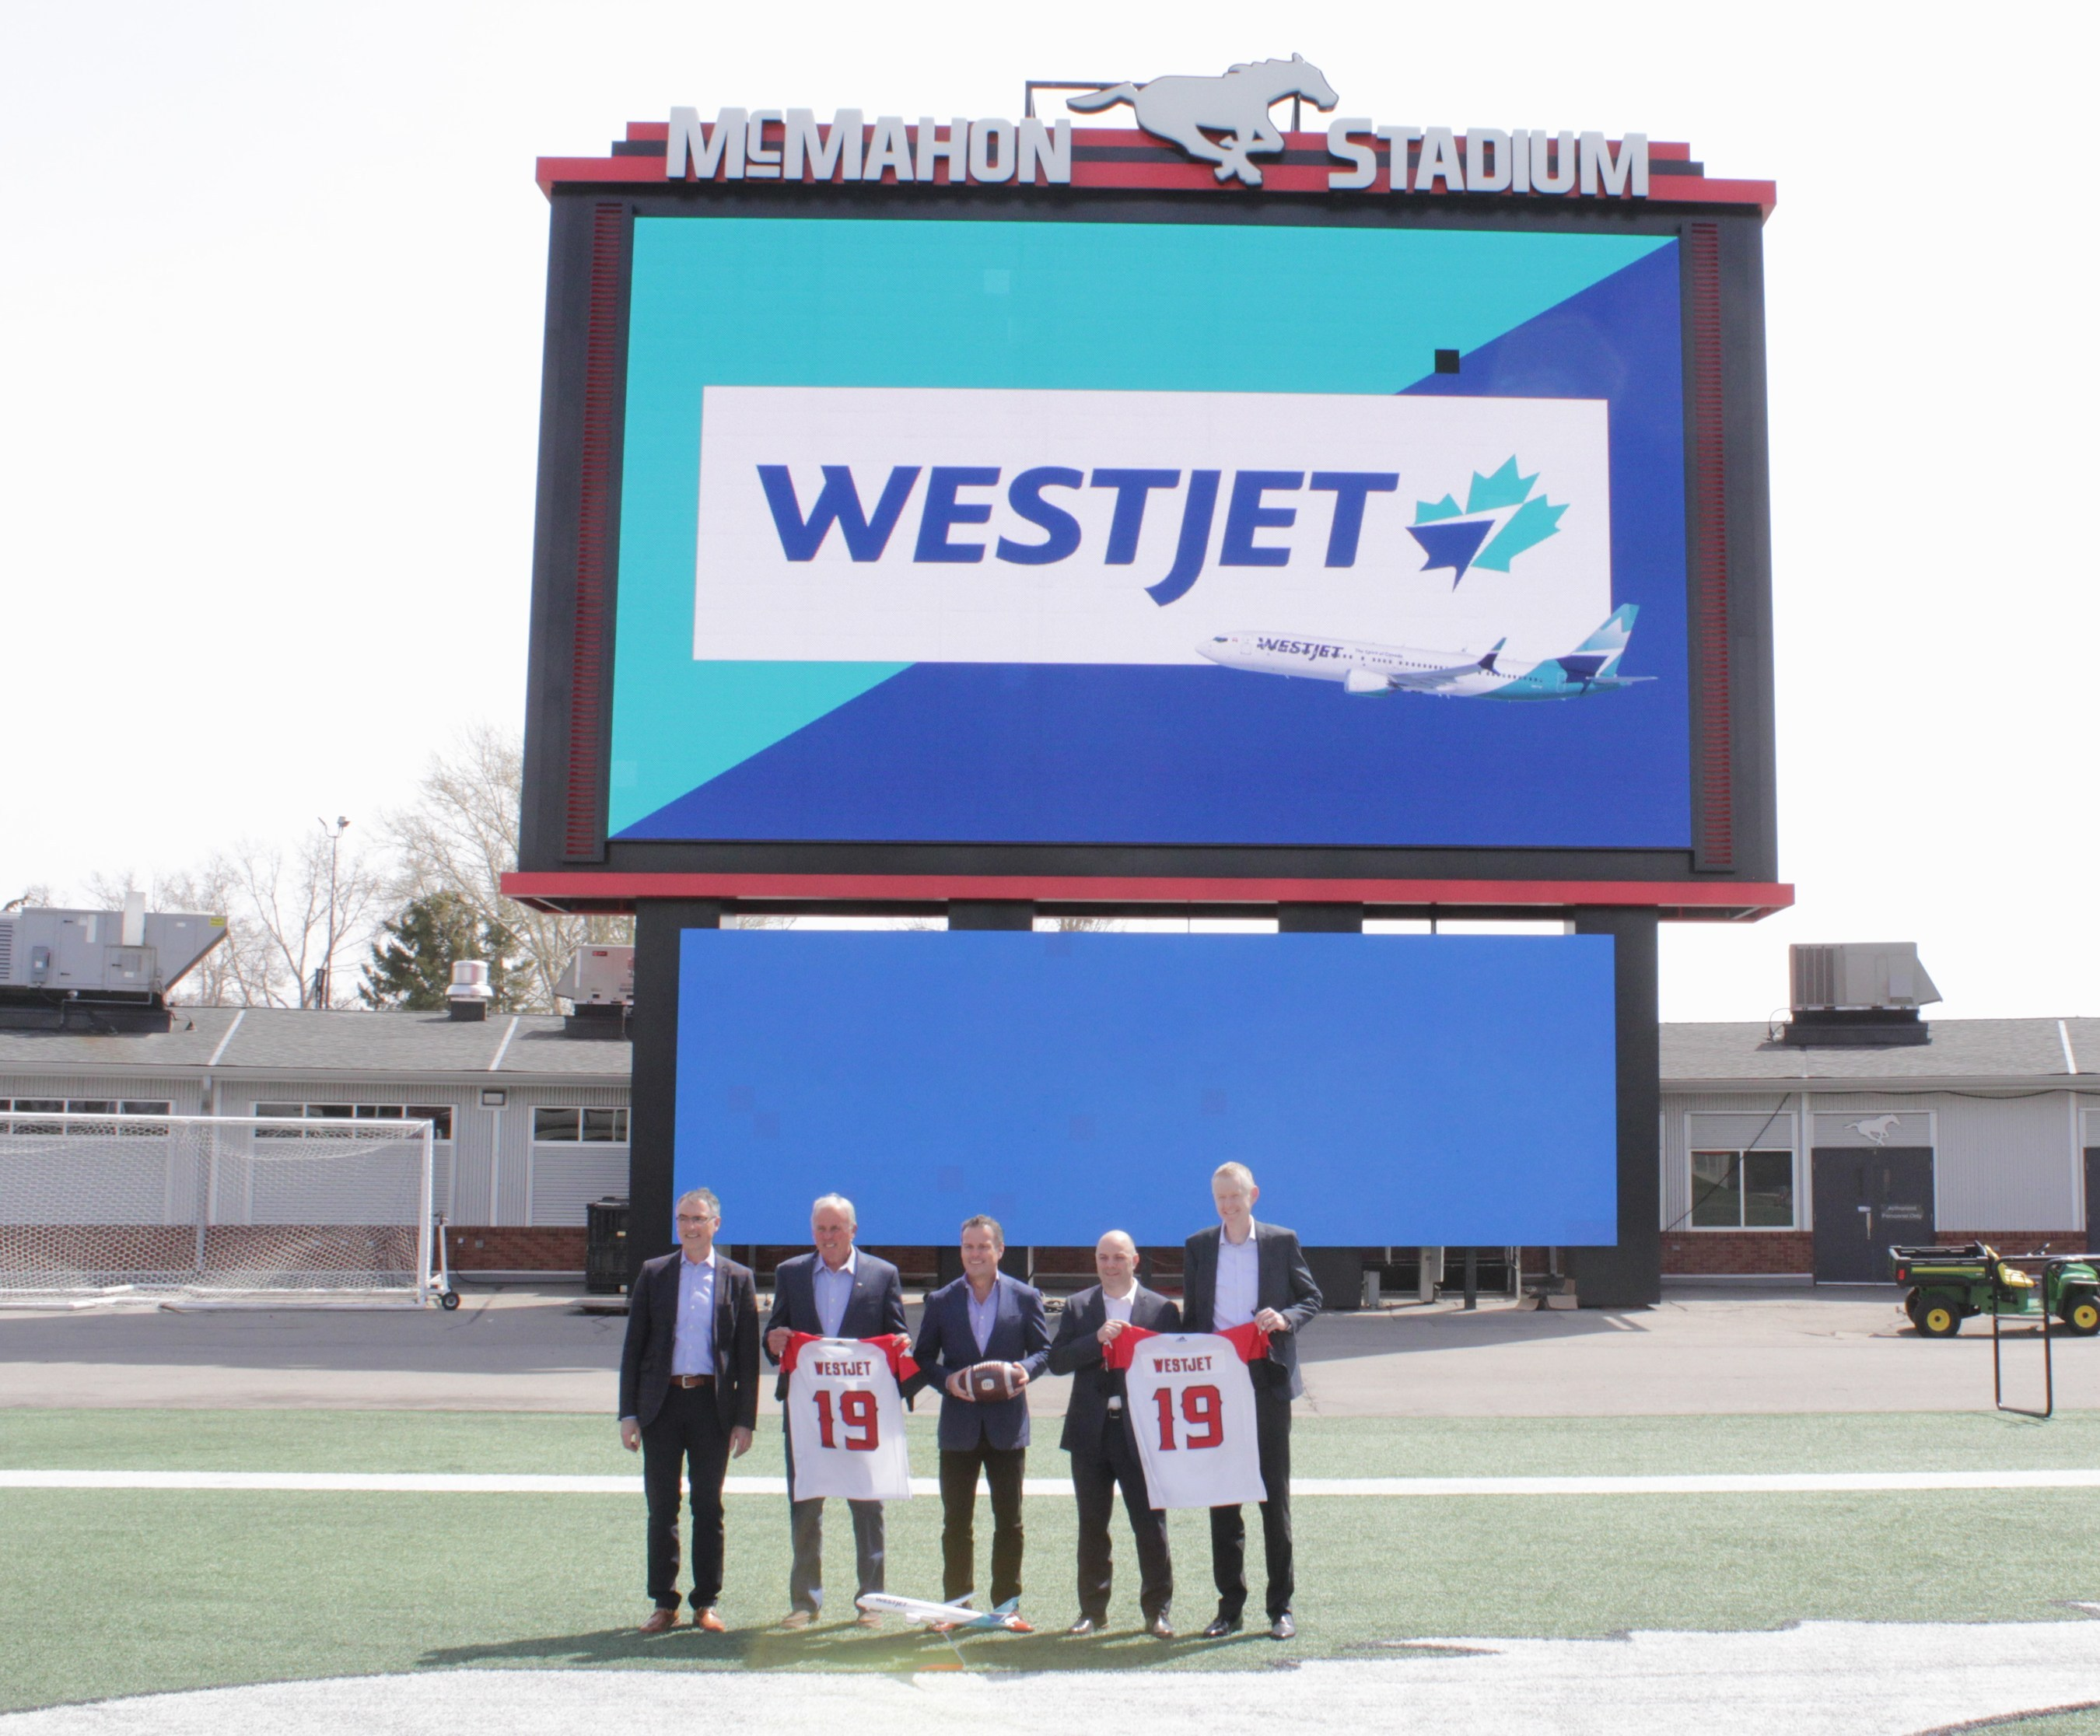 WestJet and the Calgary Stampeders celebrate new partnership in Calgary (CNW Group/WESTJET, an Alberta Partnership)